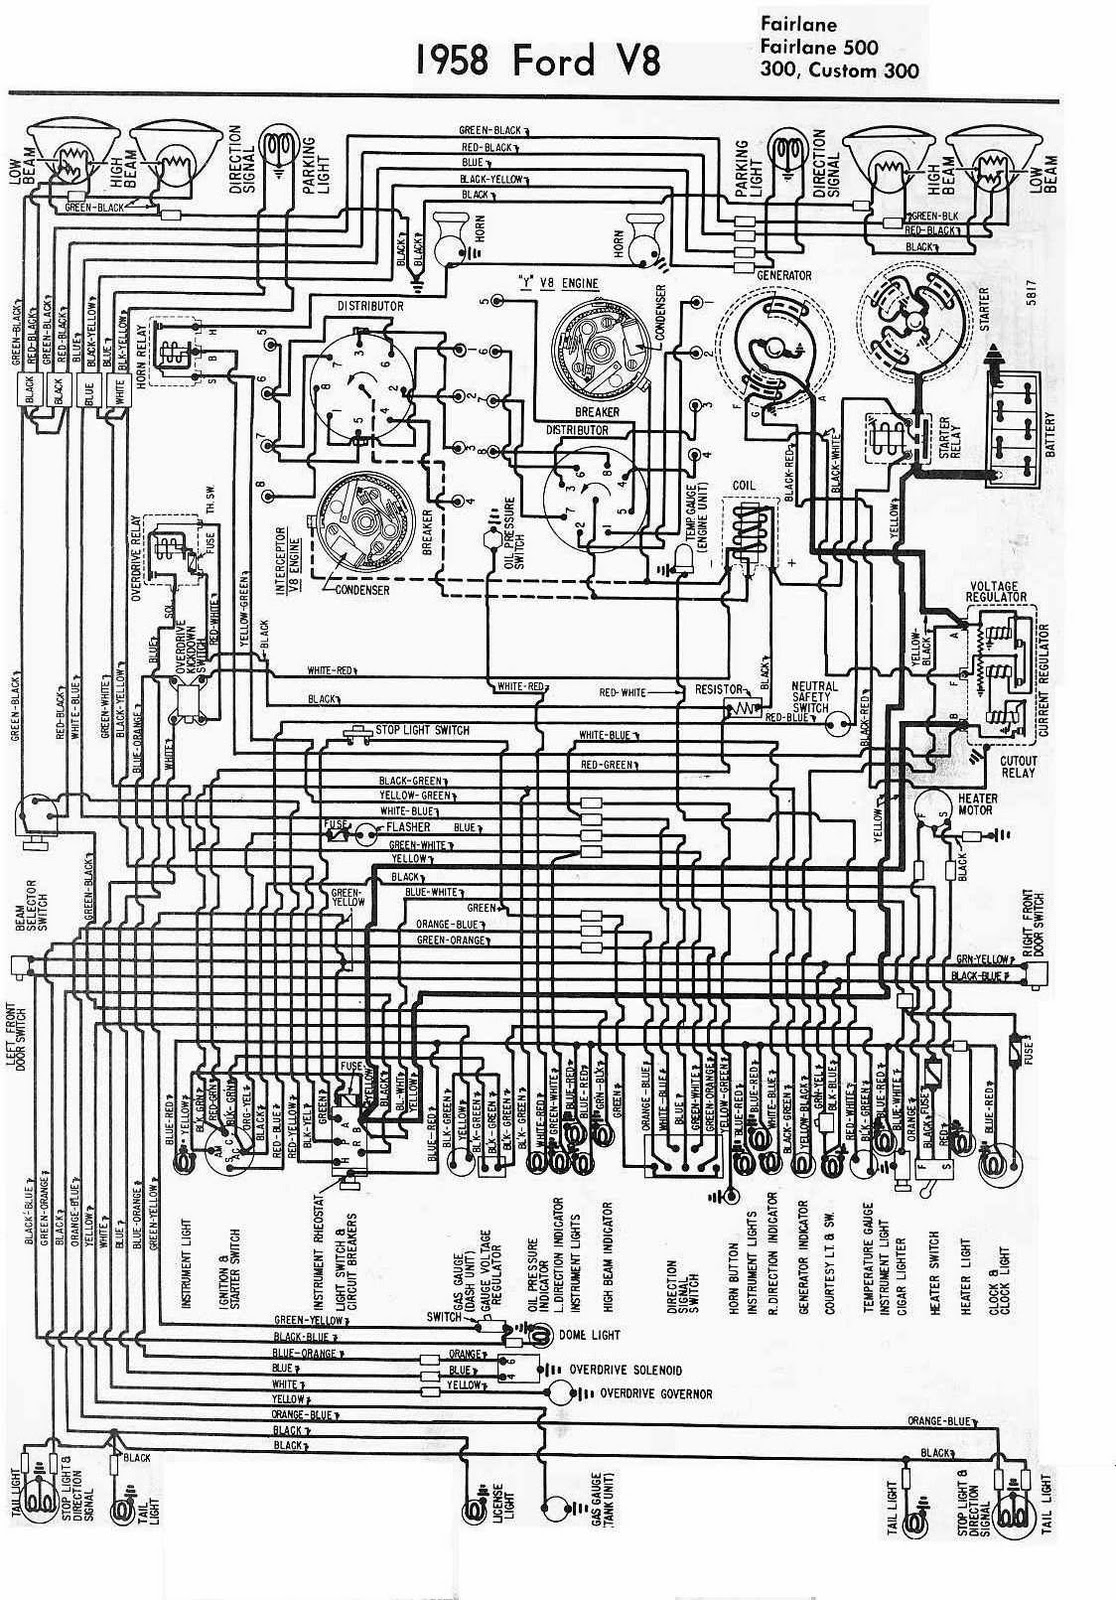 Outstanding Telegraph Wiring Diagram Get Free Image About Wiring Diagram Wiring Cloud Mousmenurrecoveryedborg